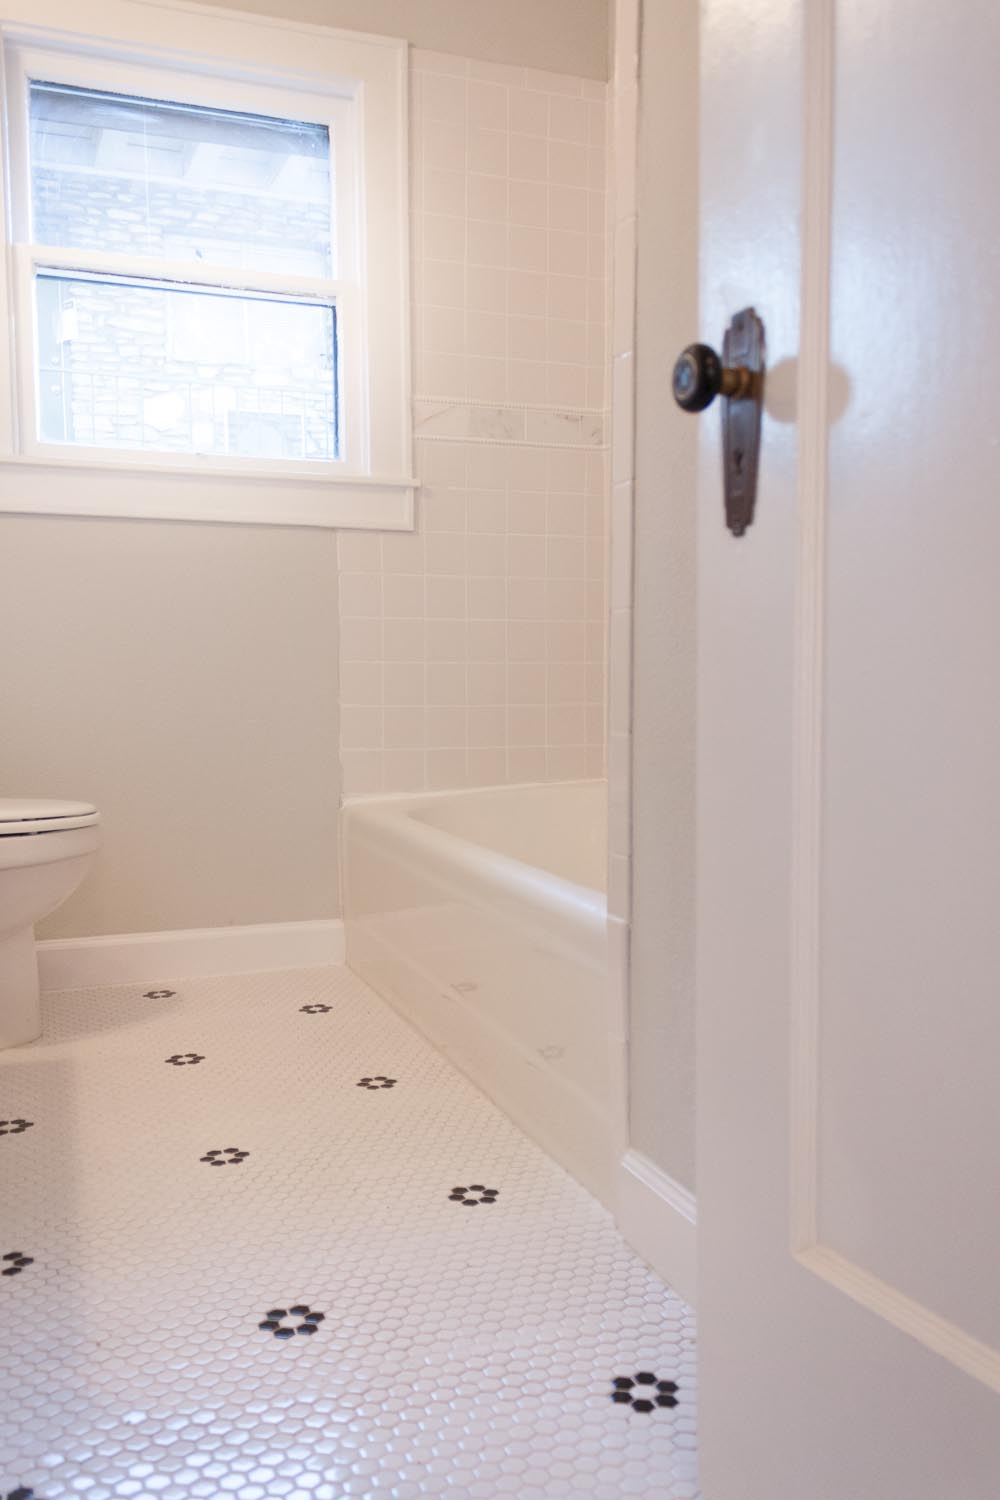 White hex tile with black florets in bathroom